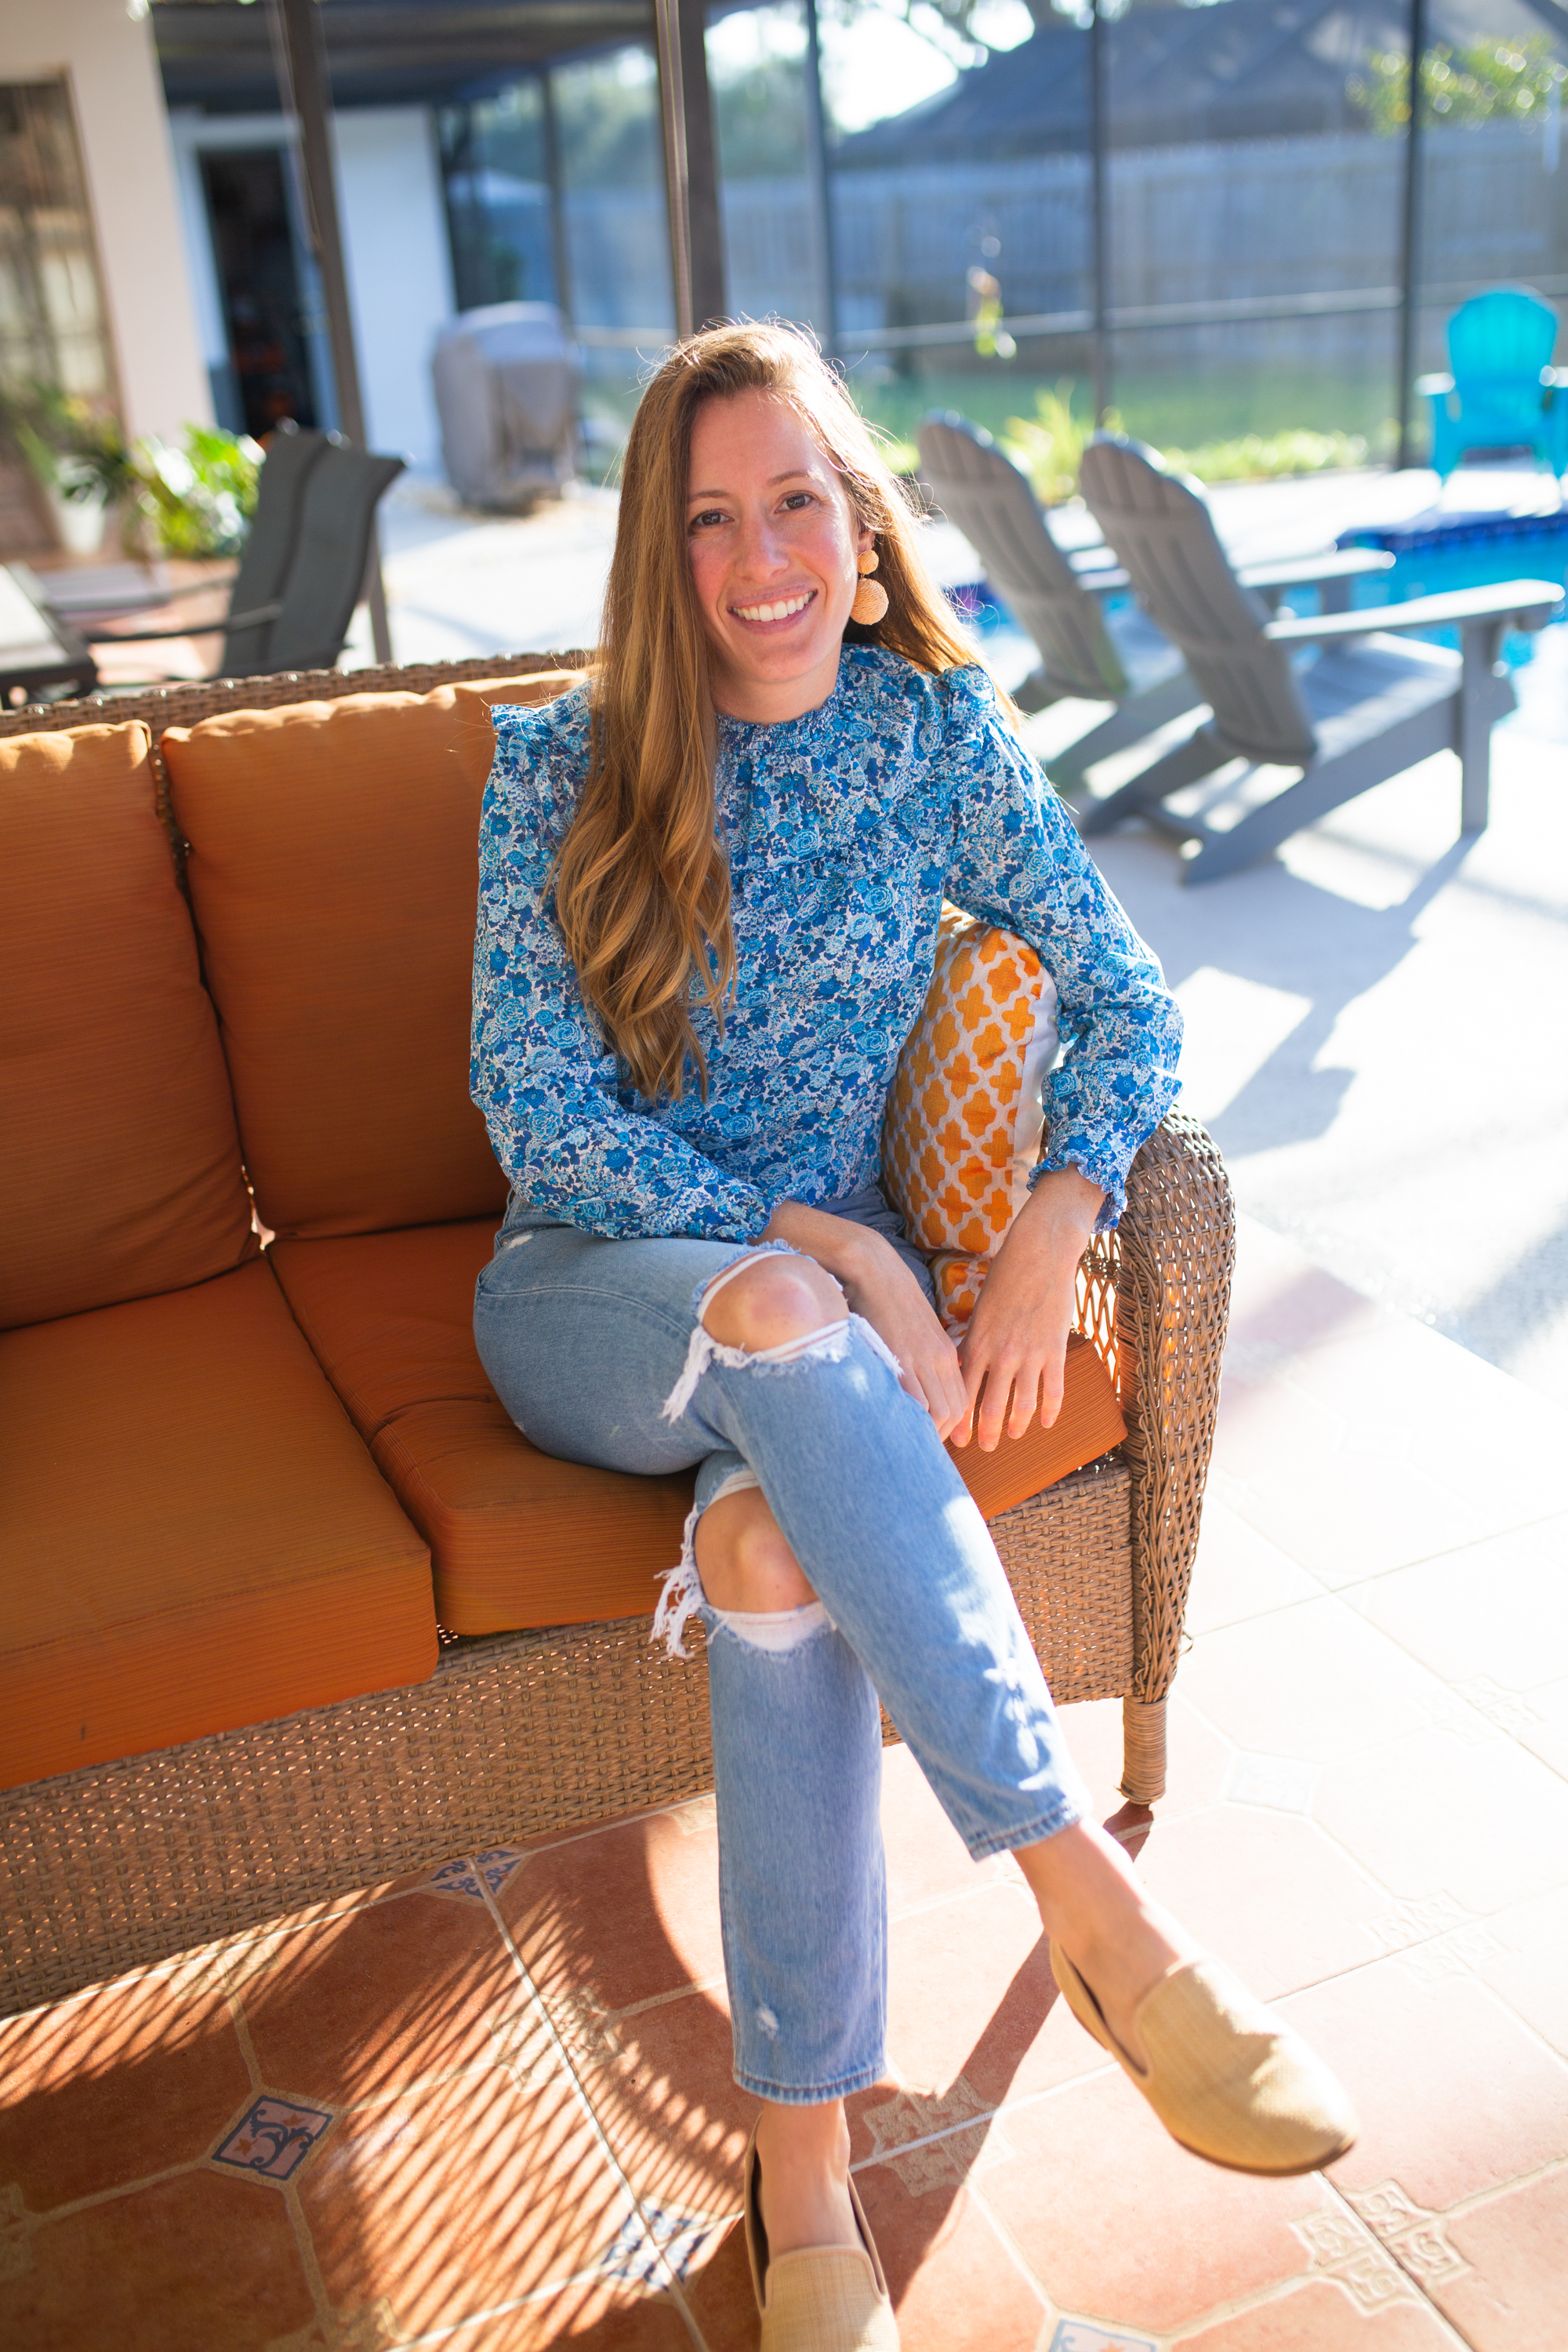 J.Crew Liberty Print Floral Blouse / Mom Jeans / Florida Blogger / Ruffle Long Sleeve Top / Liberty London / Winter Outfit / Winter Style / Floral Top / Raffia Statement Earrings - Sunshine Style, A Florida Based Fashion and Lifestyle Blog by Katie